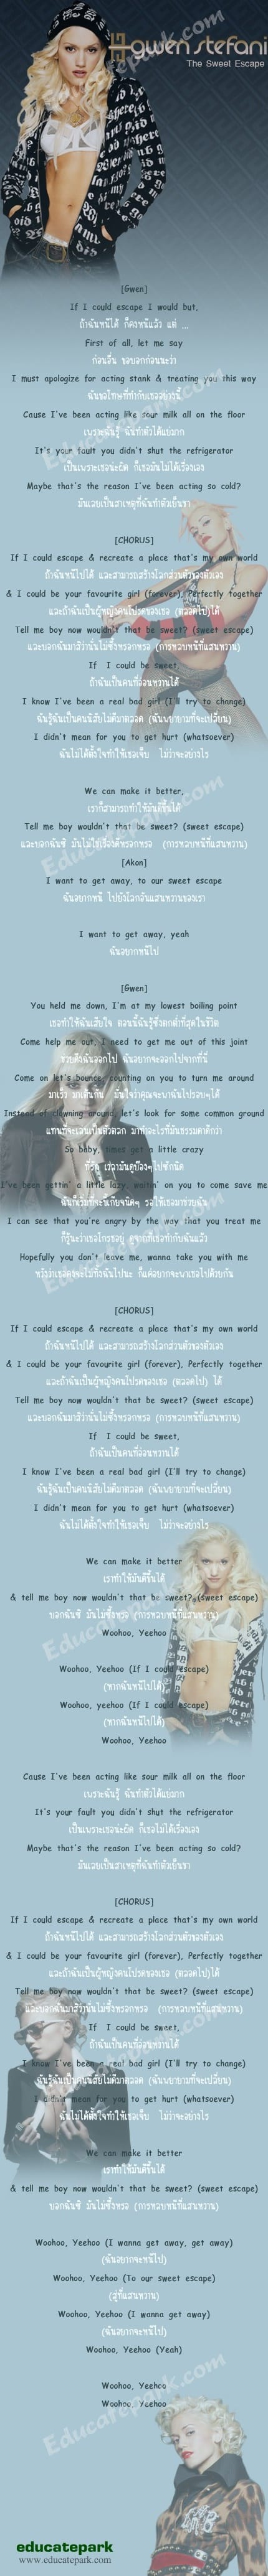 แปลเพลง The Sweet Escape - Gwen Stefani